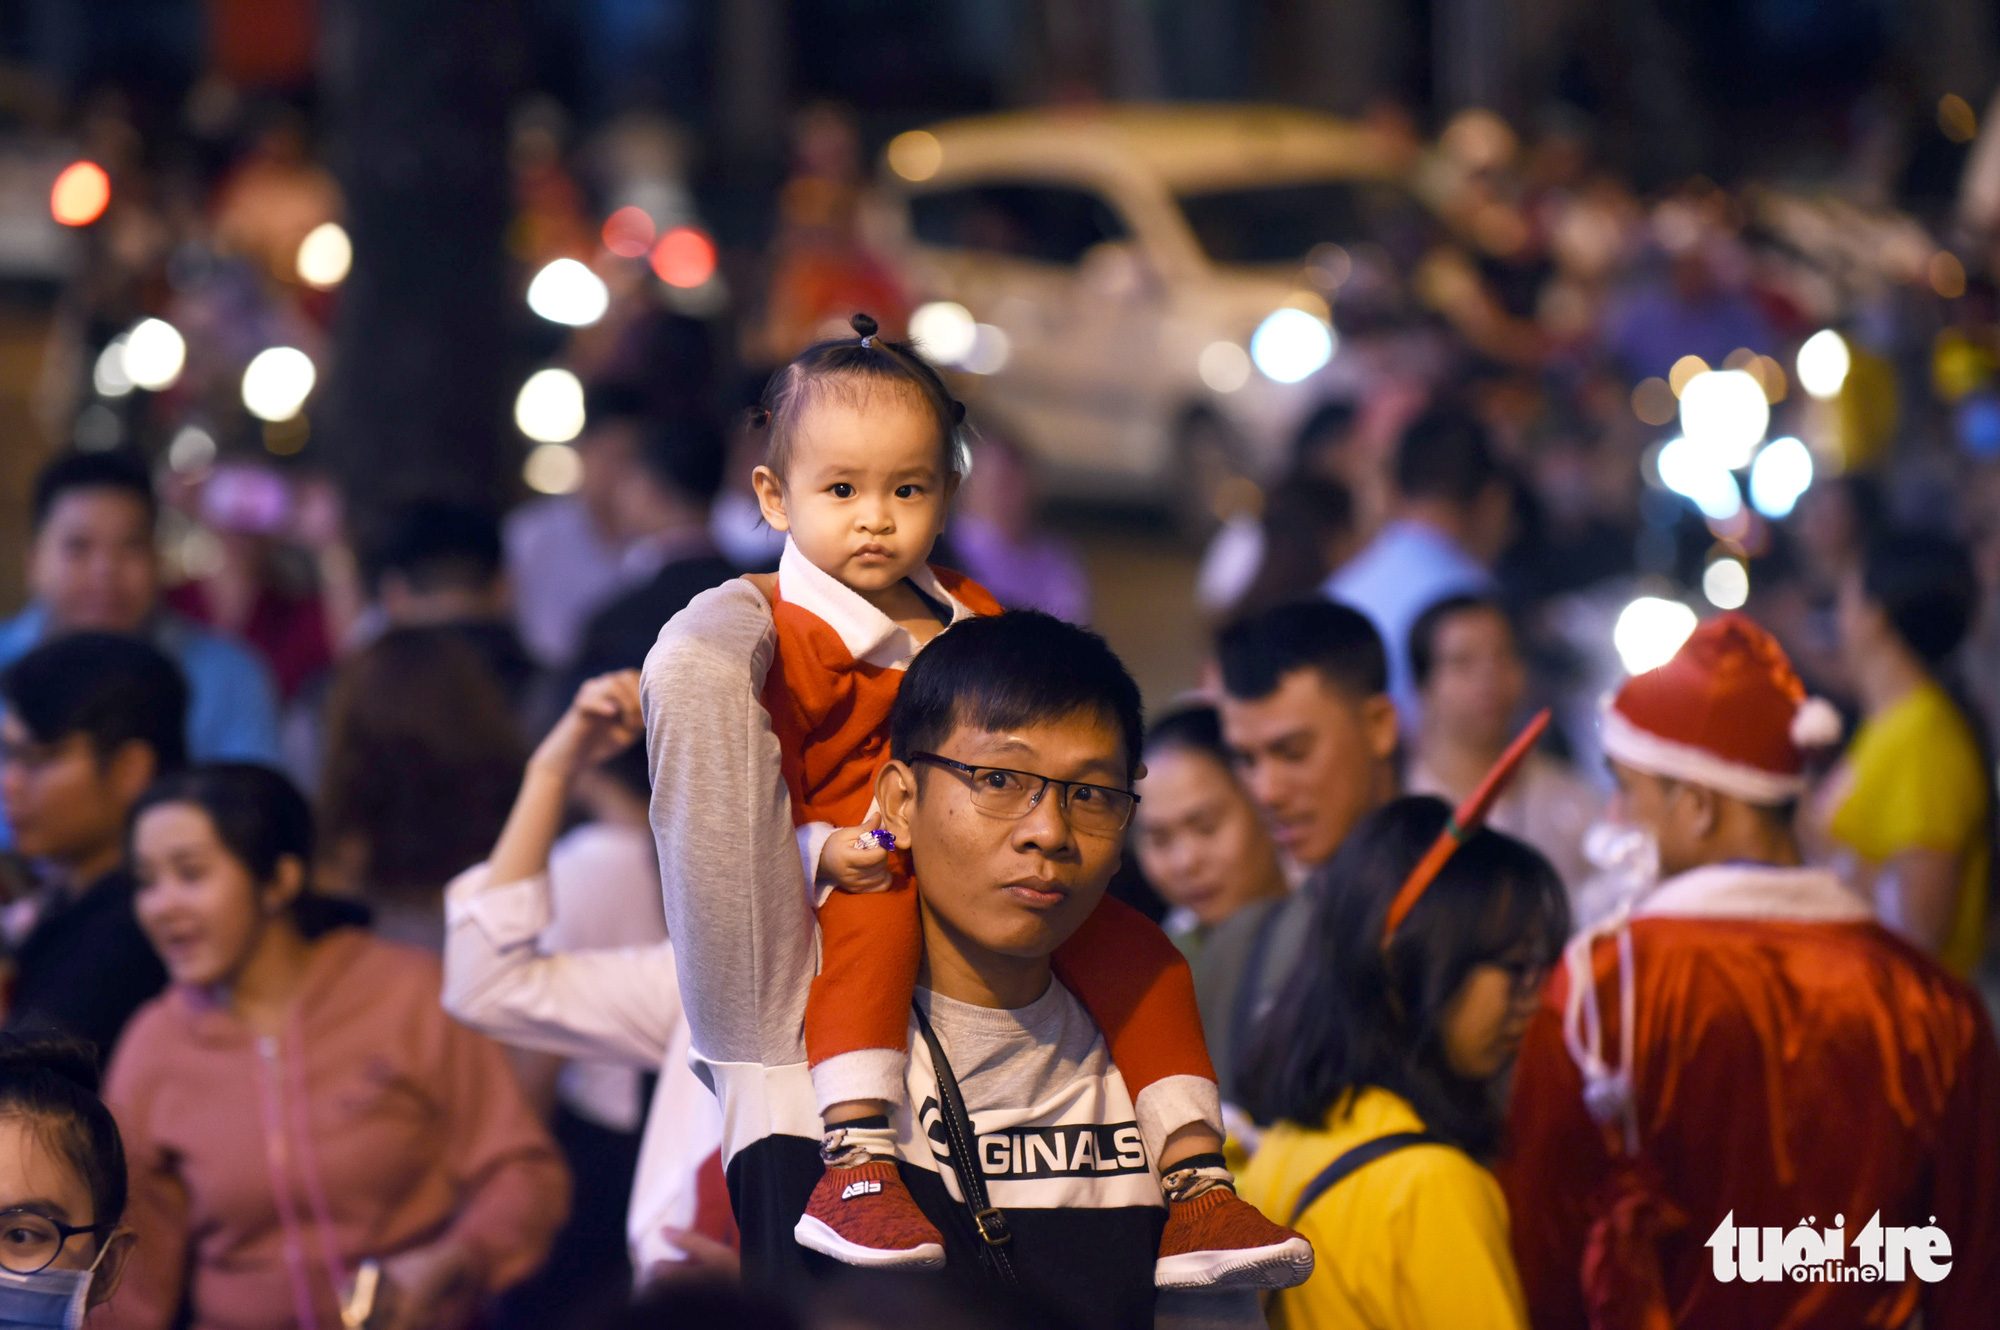 A man carries his daughter on his shoulder through the crowd in Ho Chi Minh City on Christmas Eve, December 24, 2019.